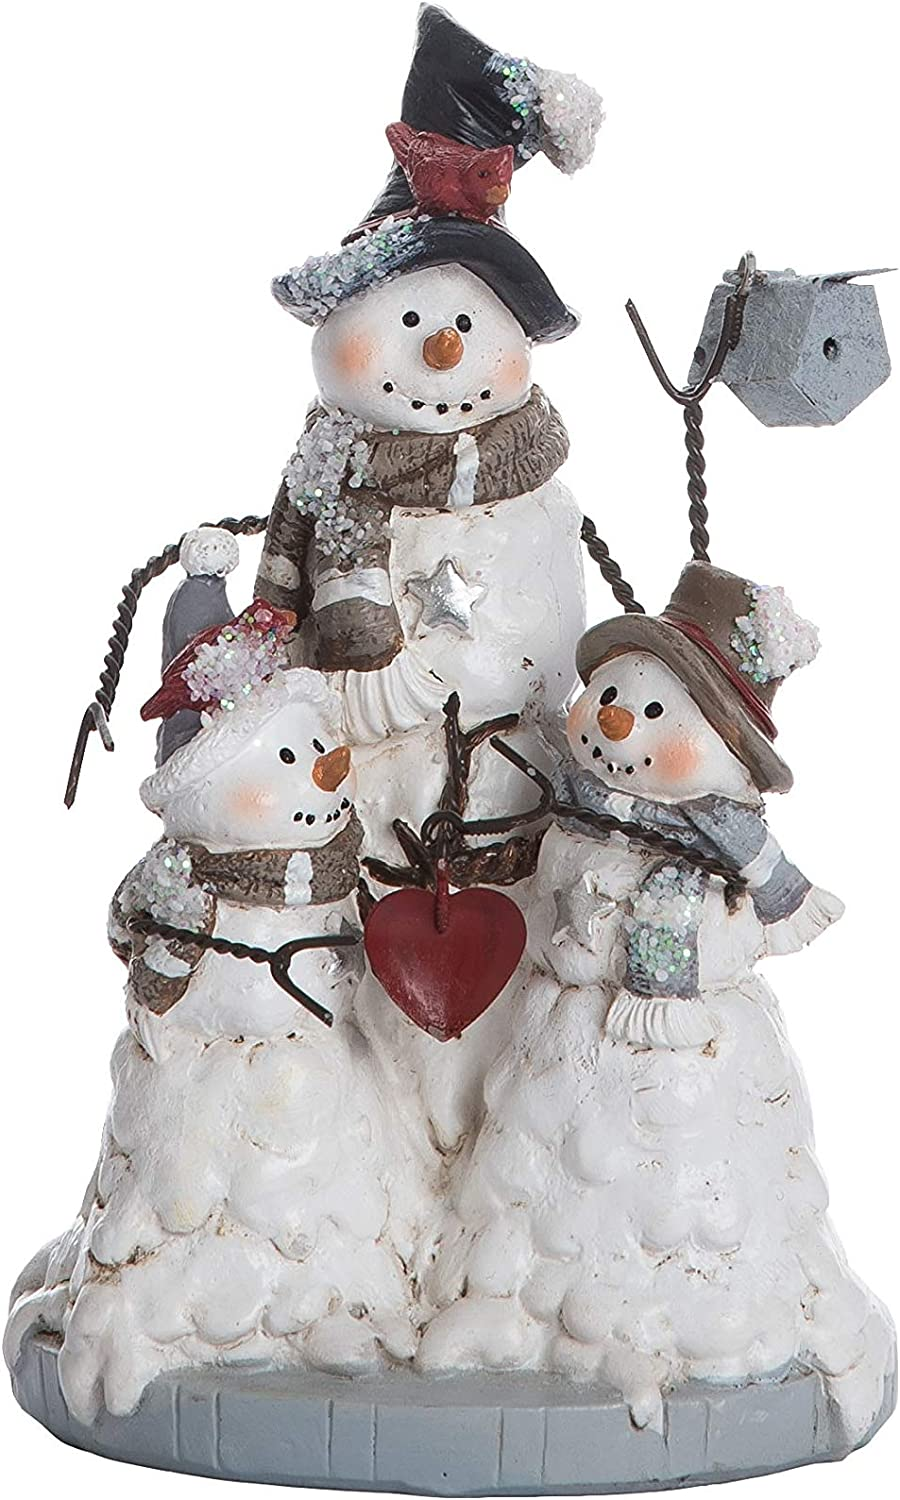 Transpac Imports Resin Wire Arm Christmas Snowman Family Figurines White